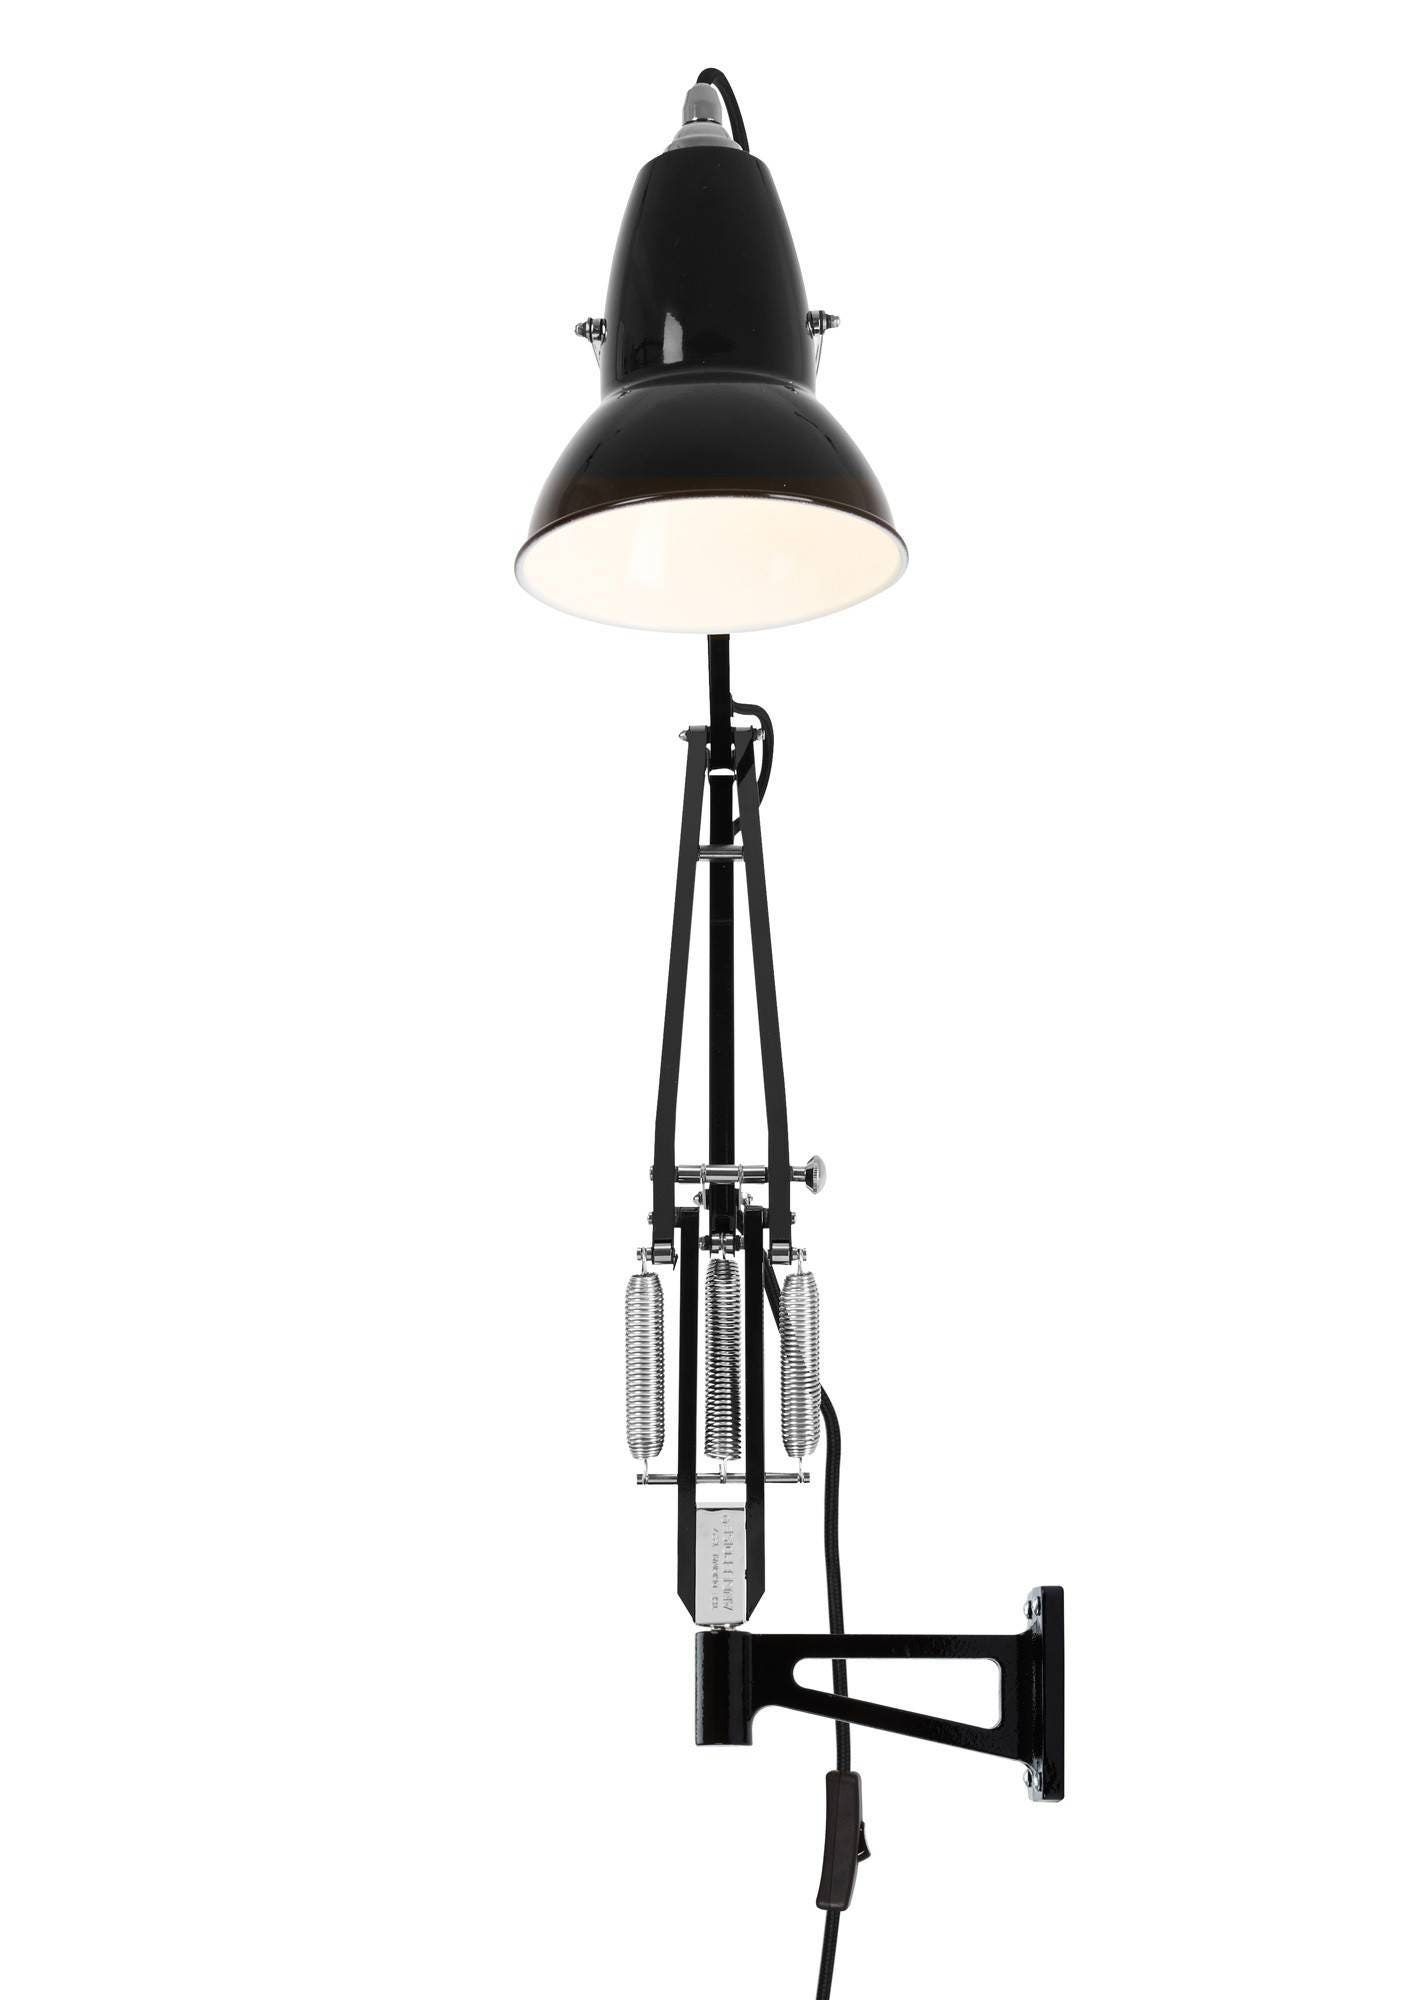 Anglepoise Original 1227 Wall Mounted Lamp - GR Shop Canada